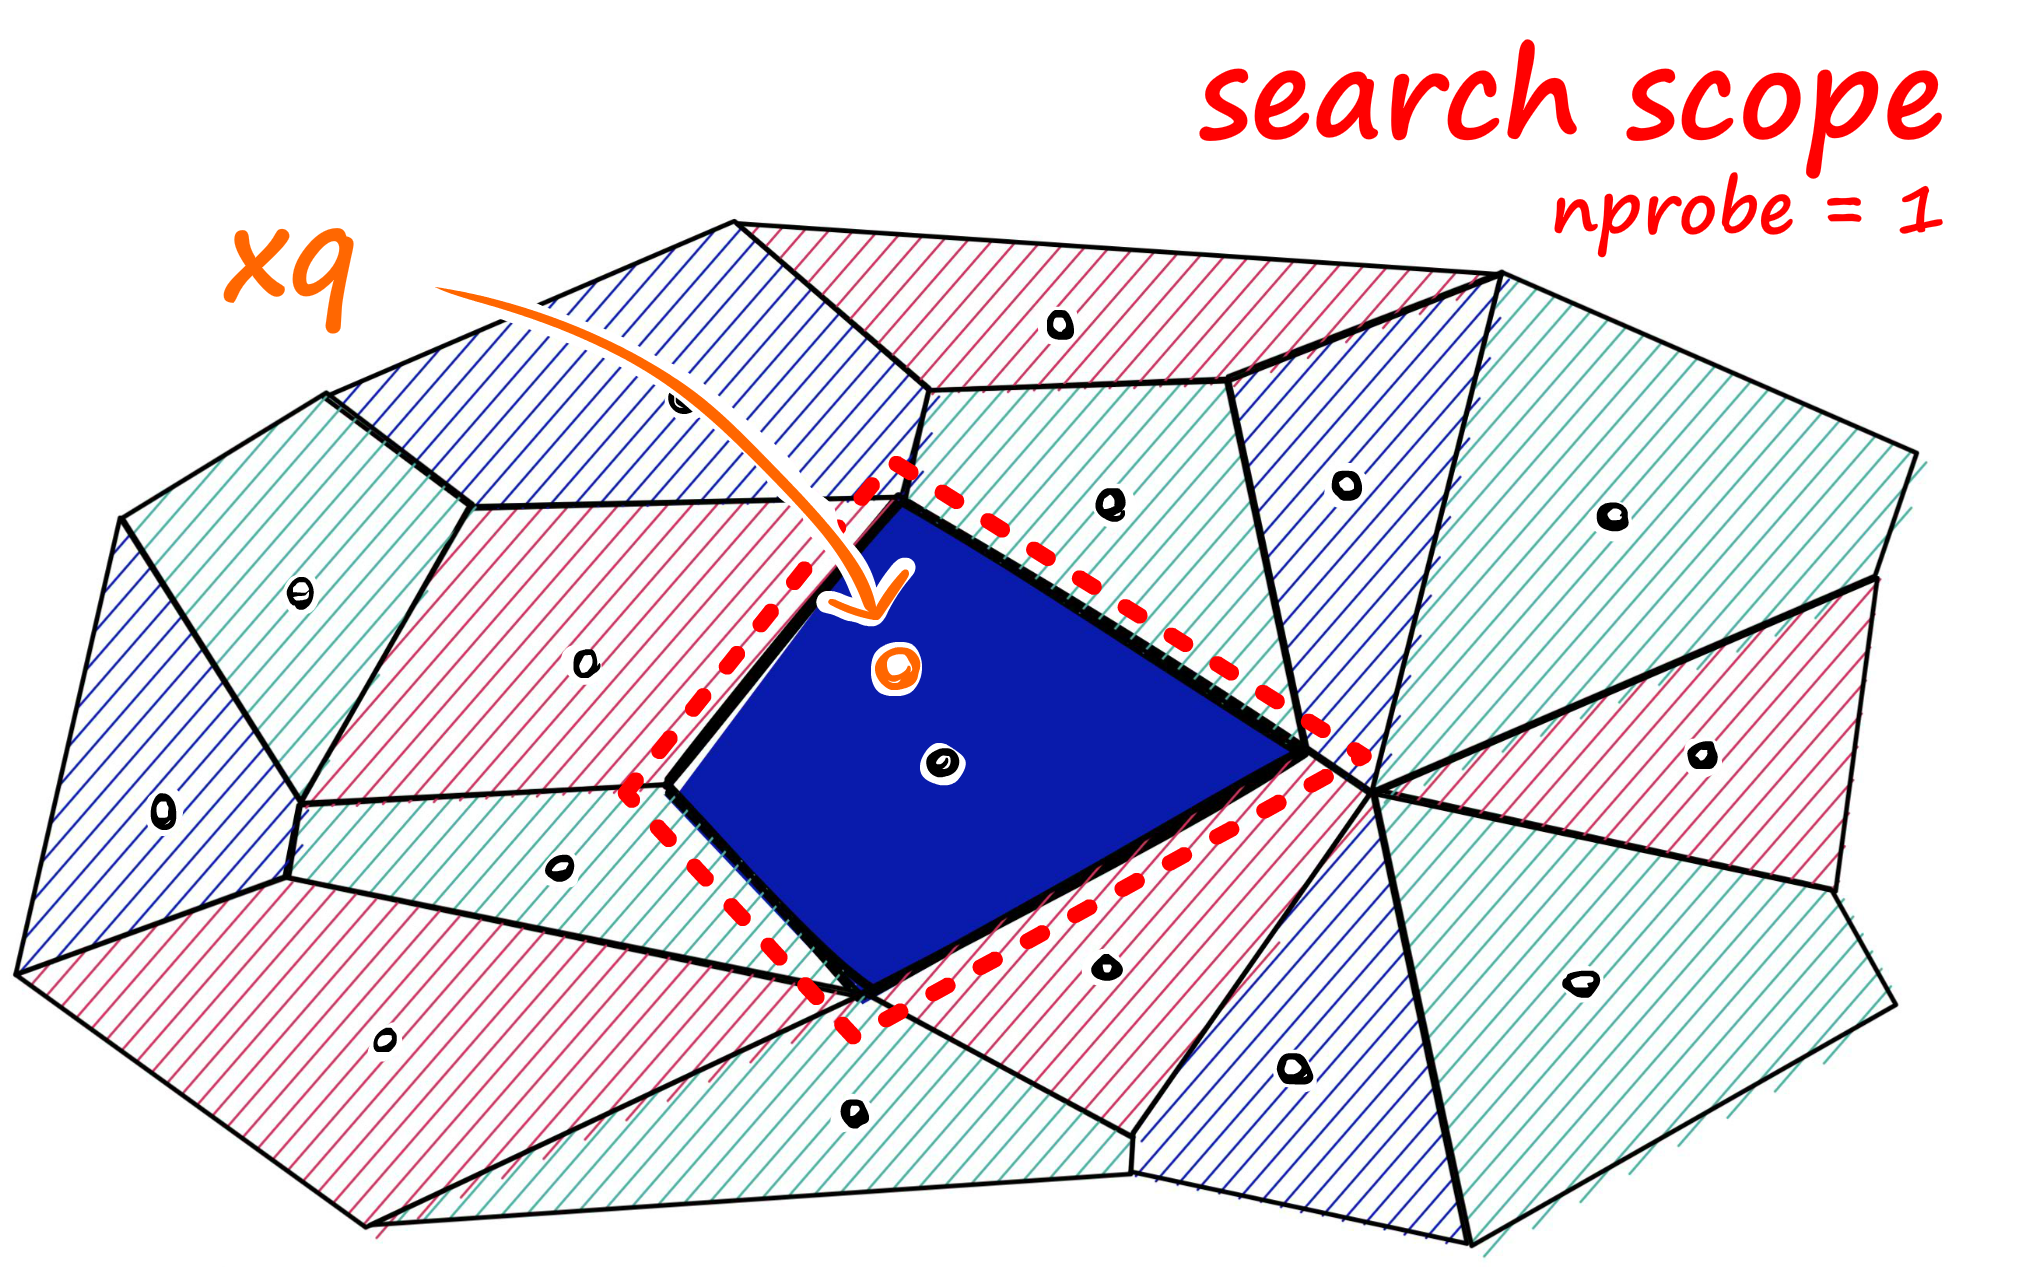 Searching the single closest cell when nprobe == 1 (left), and searching the eight closest cells when nprobe == 8 (right)